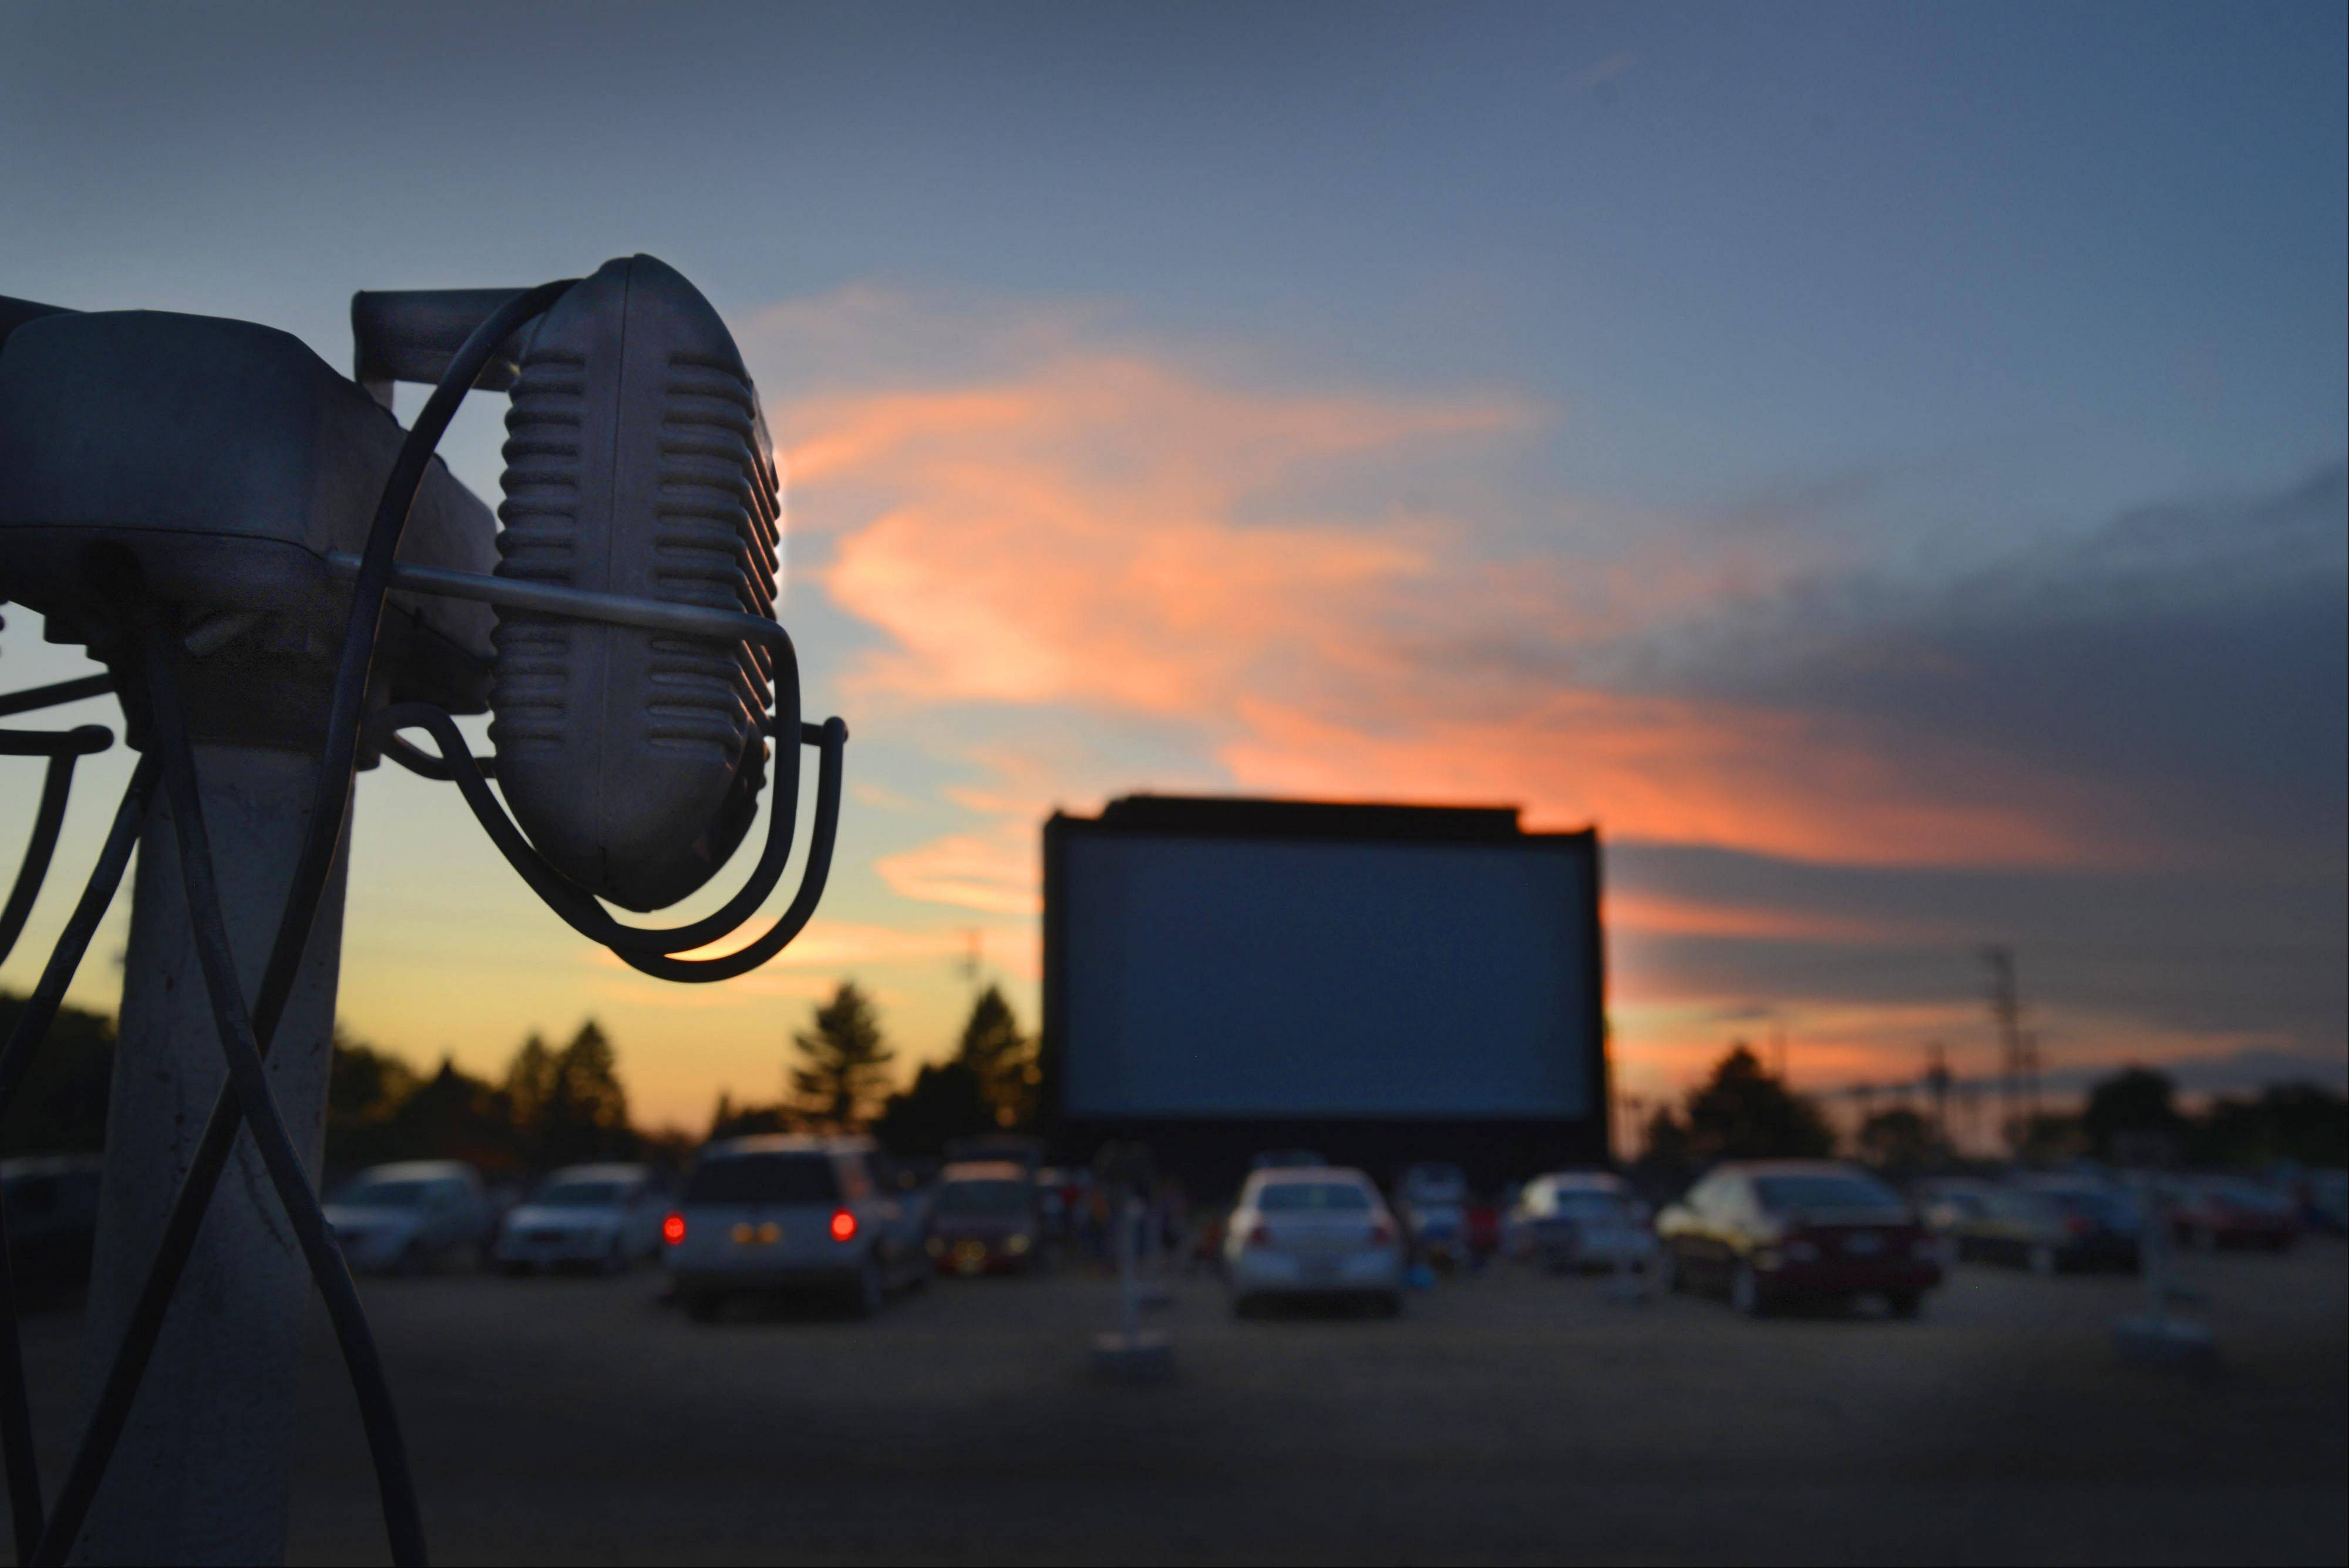 The McHenry Outdoor Theater will be one of several drive-ins to receive a digital projector as part of projectdrivein.com, sponsored by Honda and Christie Digital Systems USA.